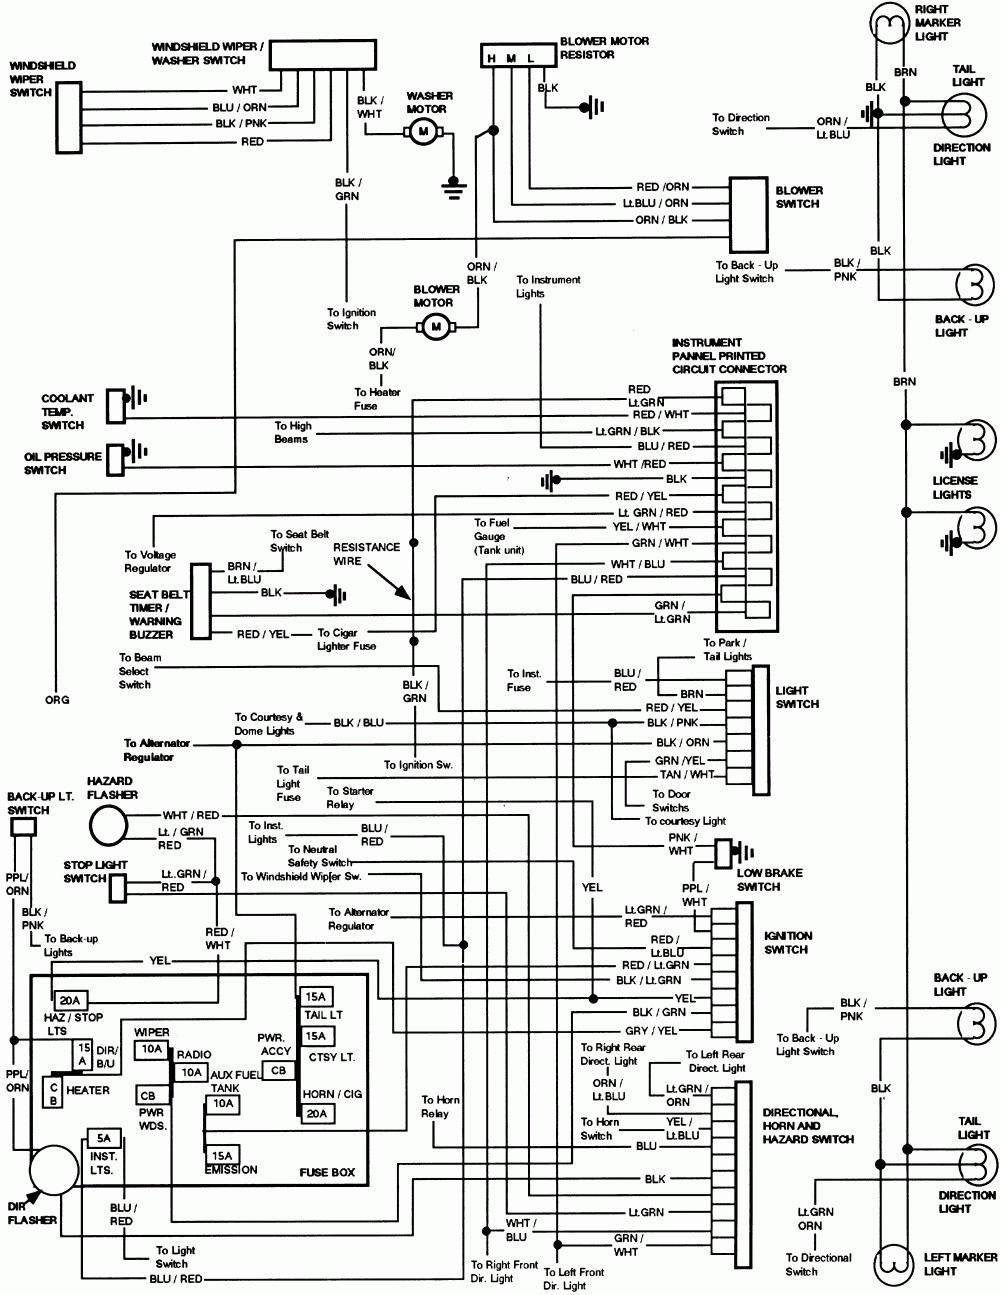 hight resolution of 2000 ford e 150 need starter wiring diagram wiring diagrams wiring 2000 ford econoline e150 wiring diagram 2000 ford e 150 wiring diagram